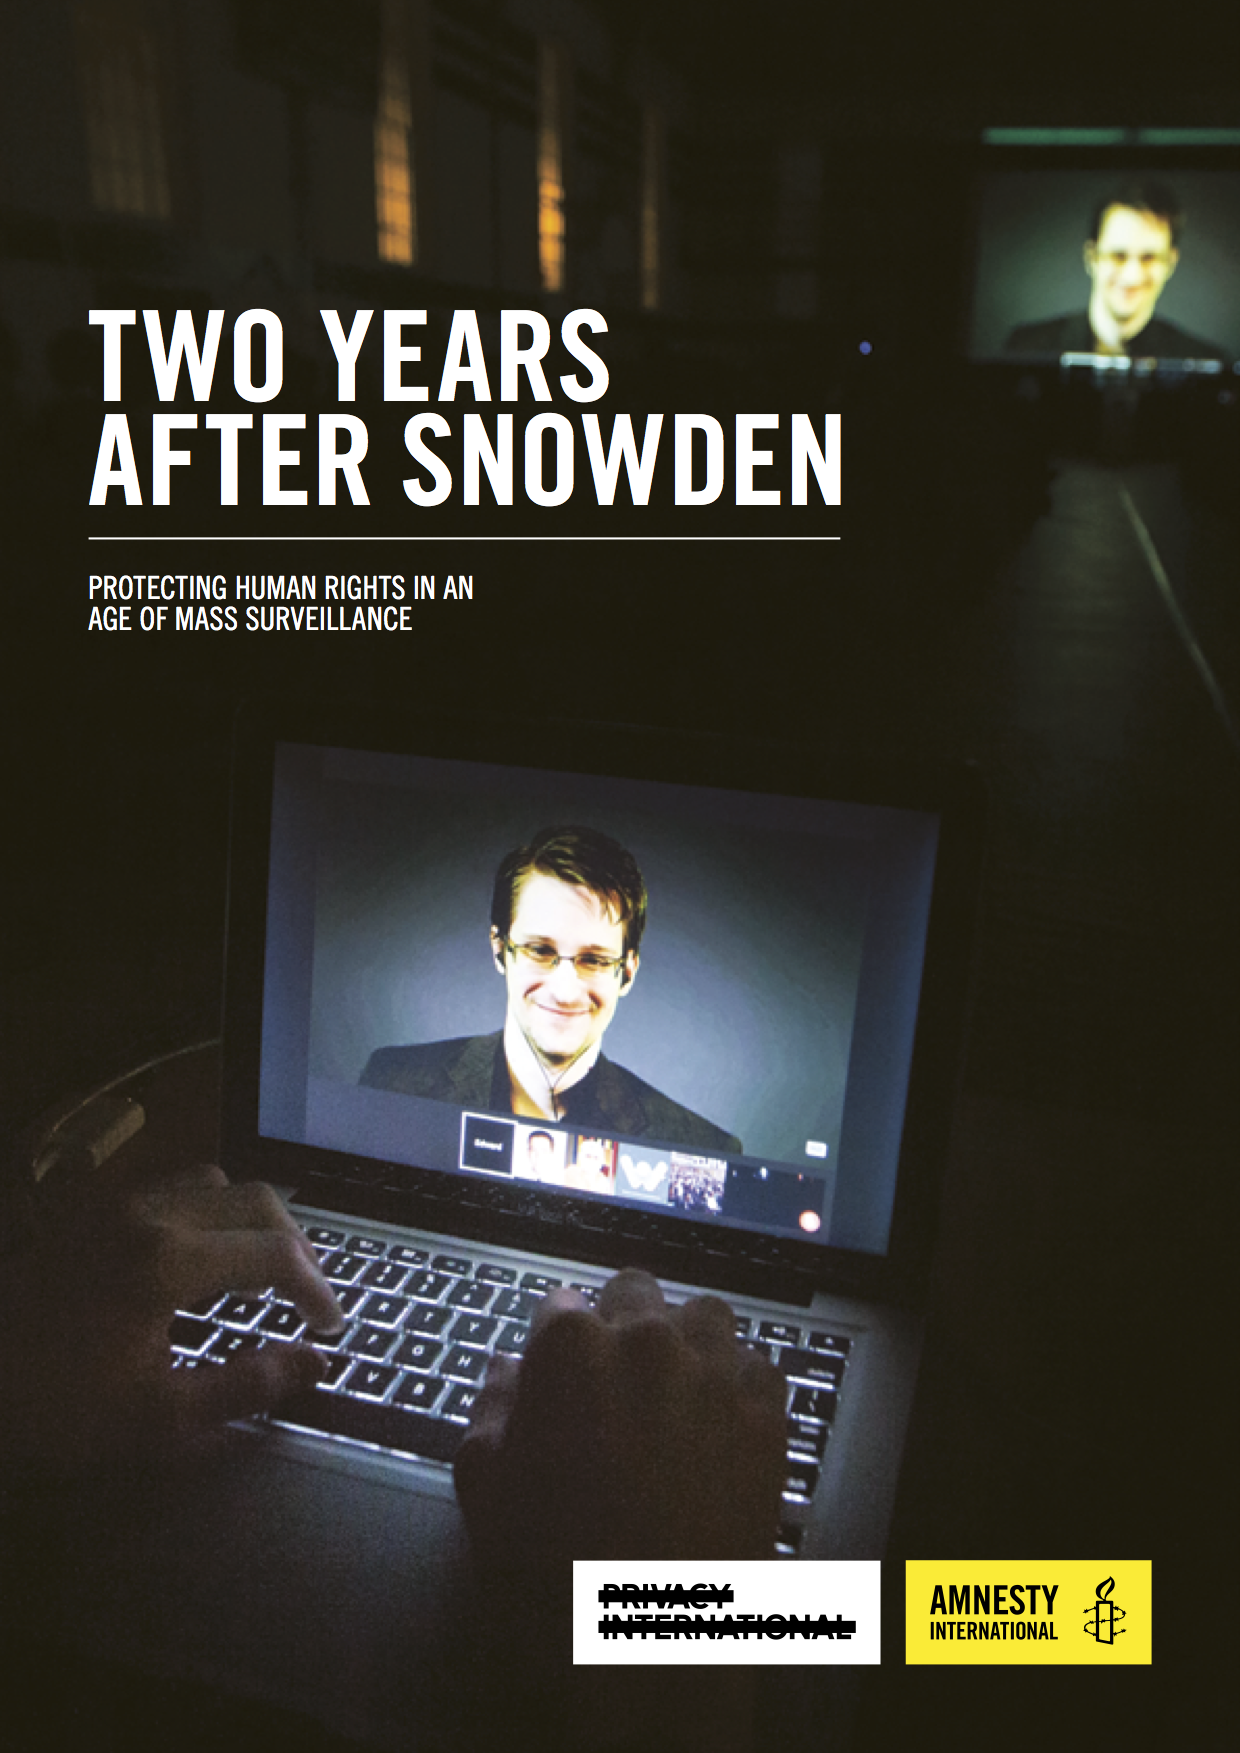 Two Years After Snowden, Governments Resist Calls To End Mass Surveillance